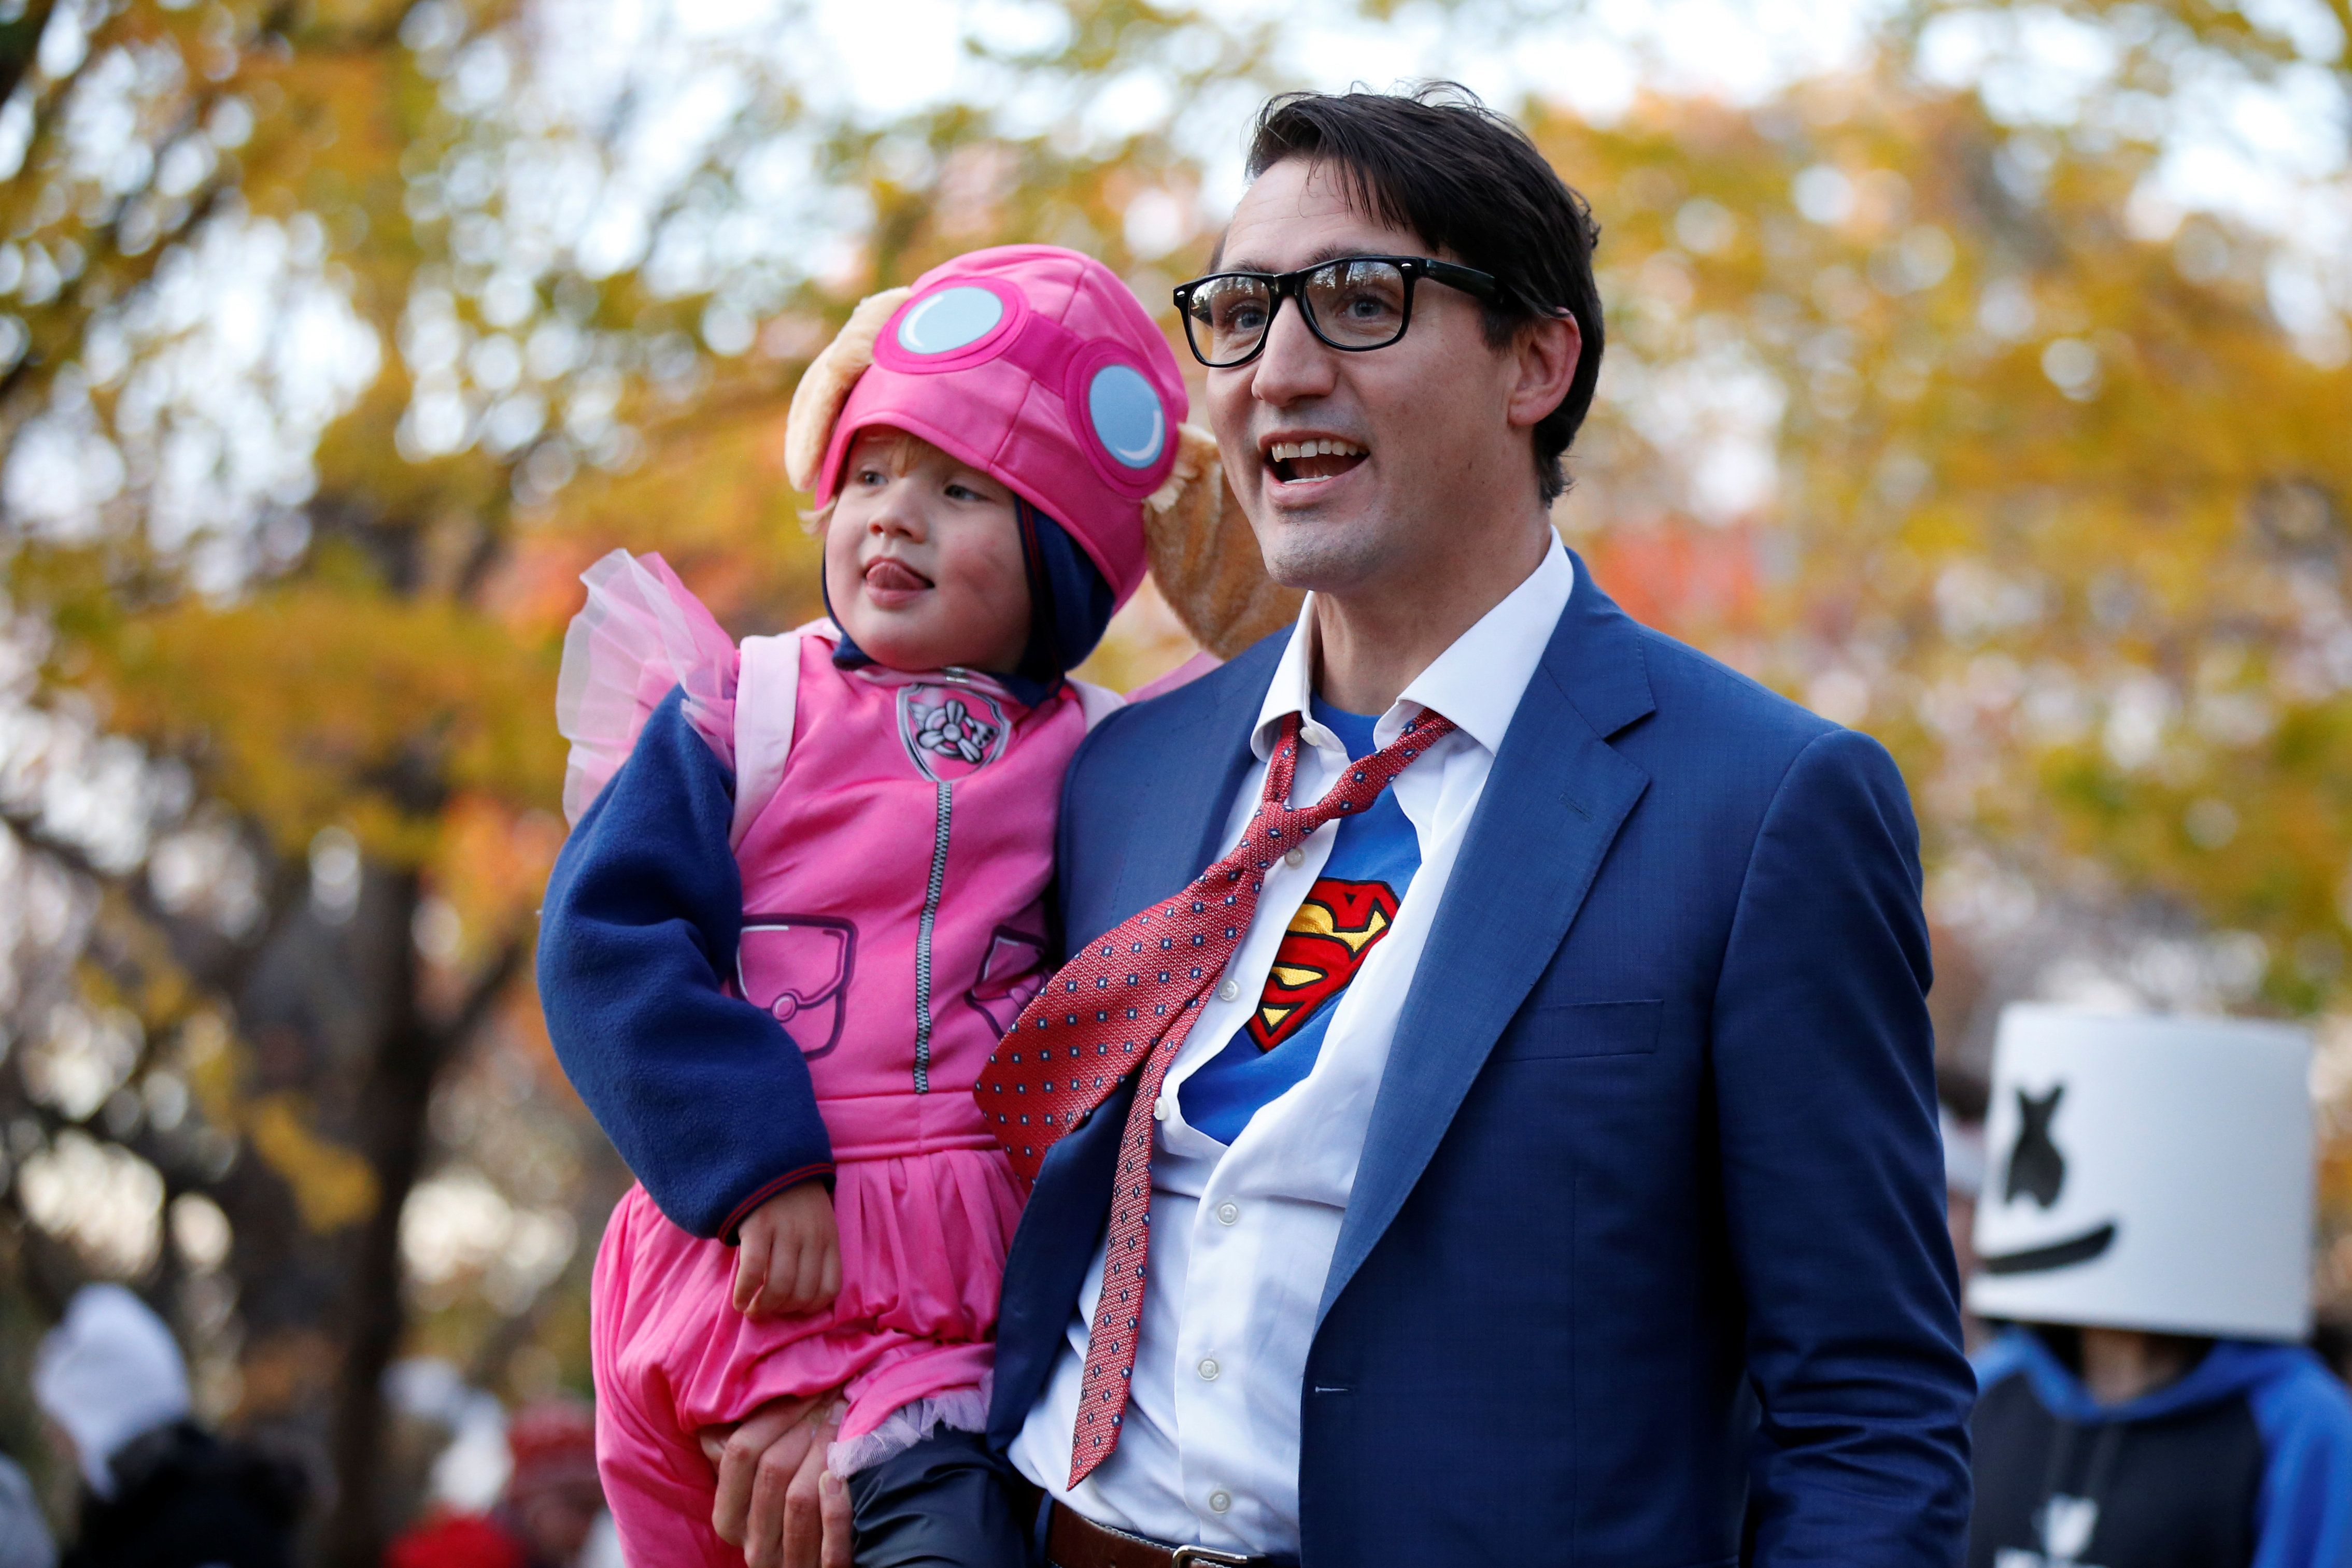 Justin Trudeau carries his son Hadrien while participating in Halloween festivities at Rideau Hall in Ottawa, Ontario, Canada on Oct. 31.